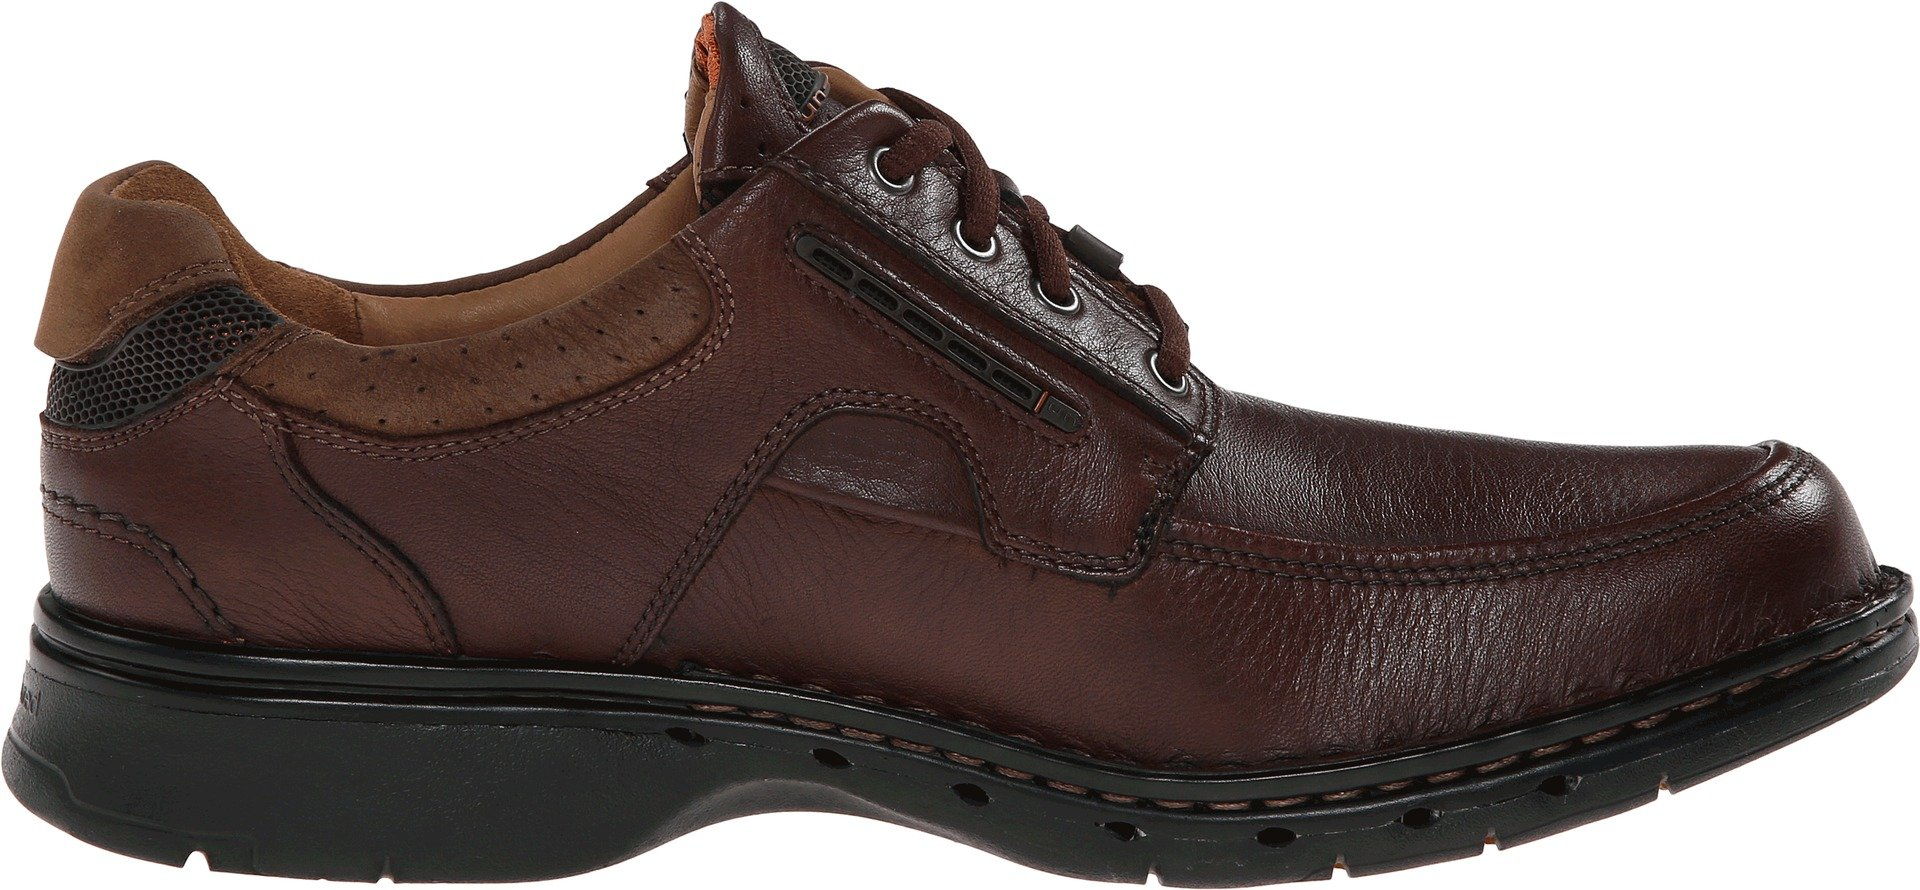 Clarks Men's Un.bend Brown Leather Oxford 11.5 B - Narrow by CLARKS (Image #3)